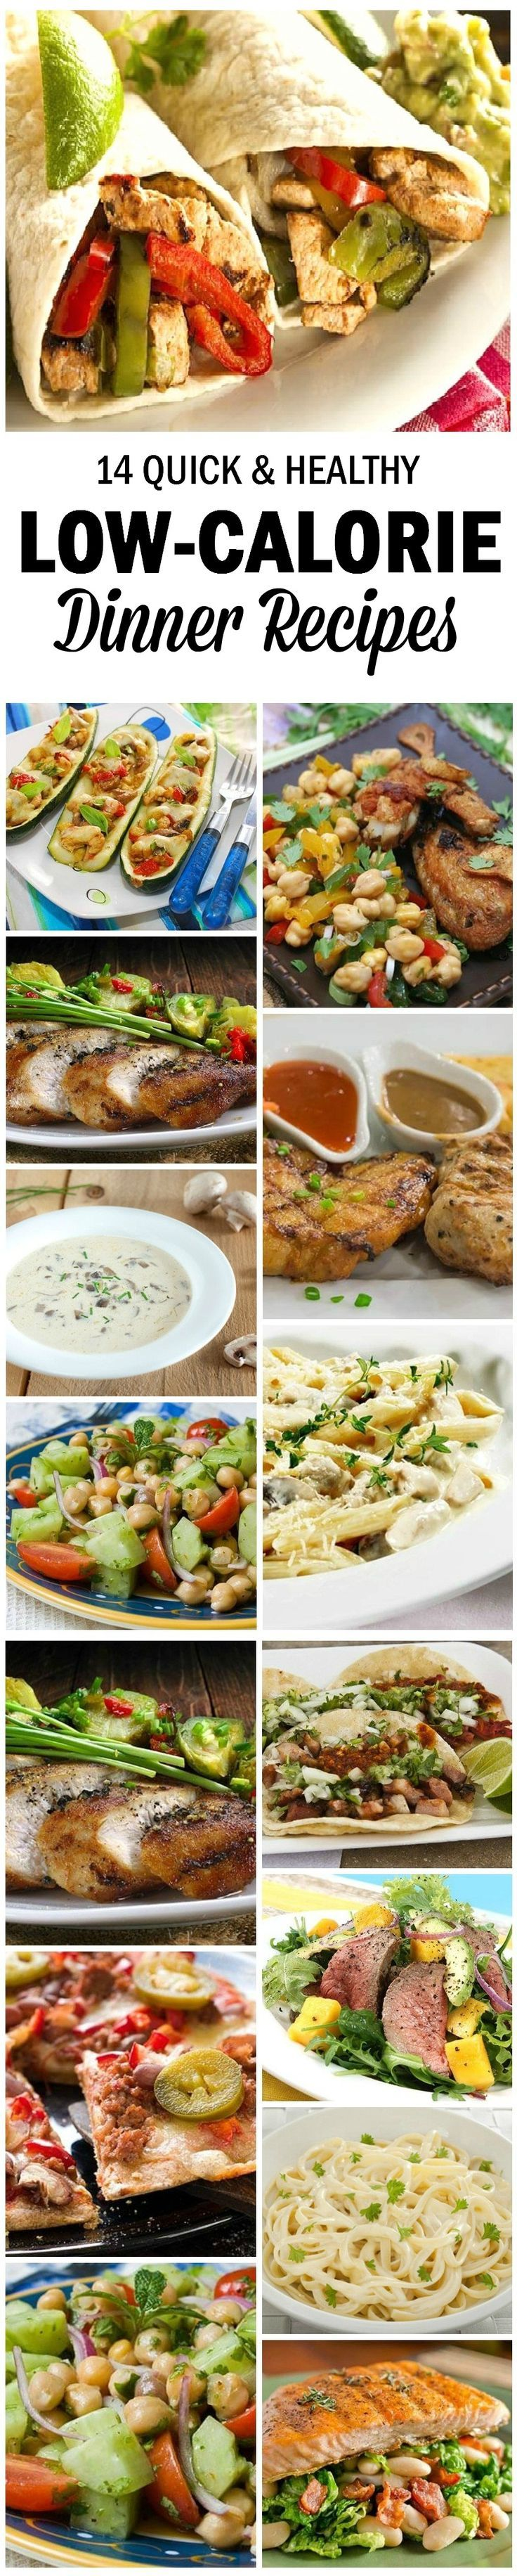 14 Quick And Healthy Low Calorie Dinner Recipes ..stylecraze.com